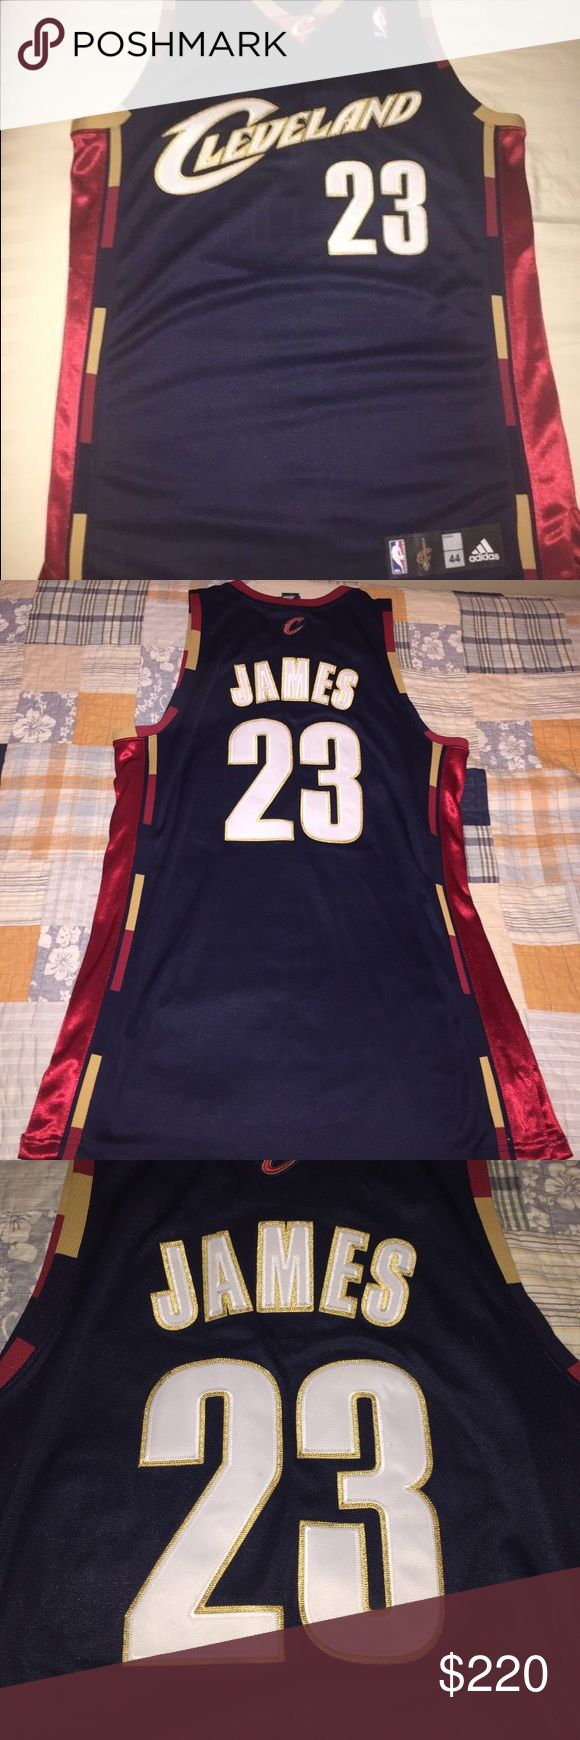 LeBron James ORIGINAL CAVS JERSEY This an original LeBron James Cleveland Caveliers jersey. It's in tip top shape!!!! It's never been worn. It's frame material. OPEN TO REASONABLE OFFERS‼️ Adidas Other